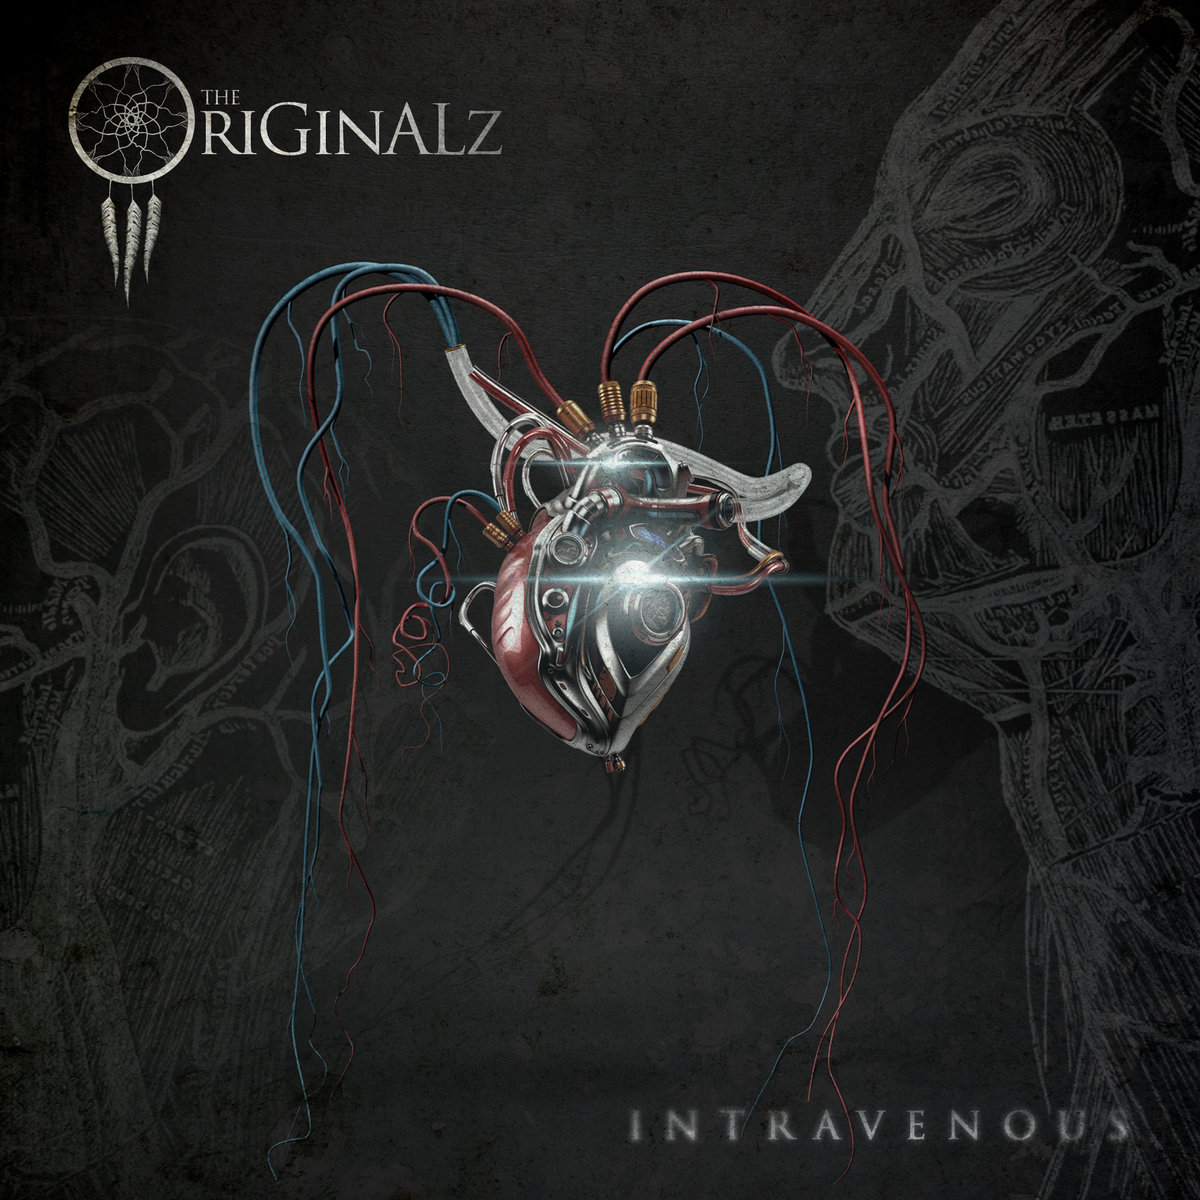 The OriGinALz feat. Knight Riderz - West Side Comin' Thru @ 'Intravenous' album (Austin)